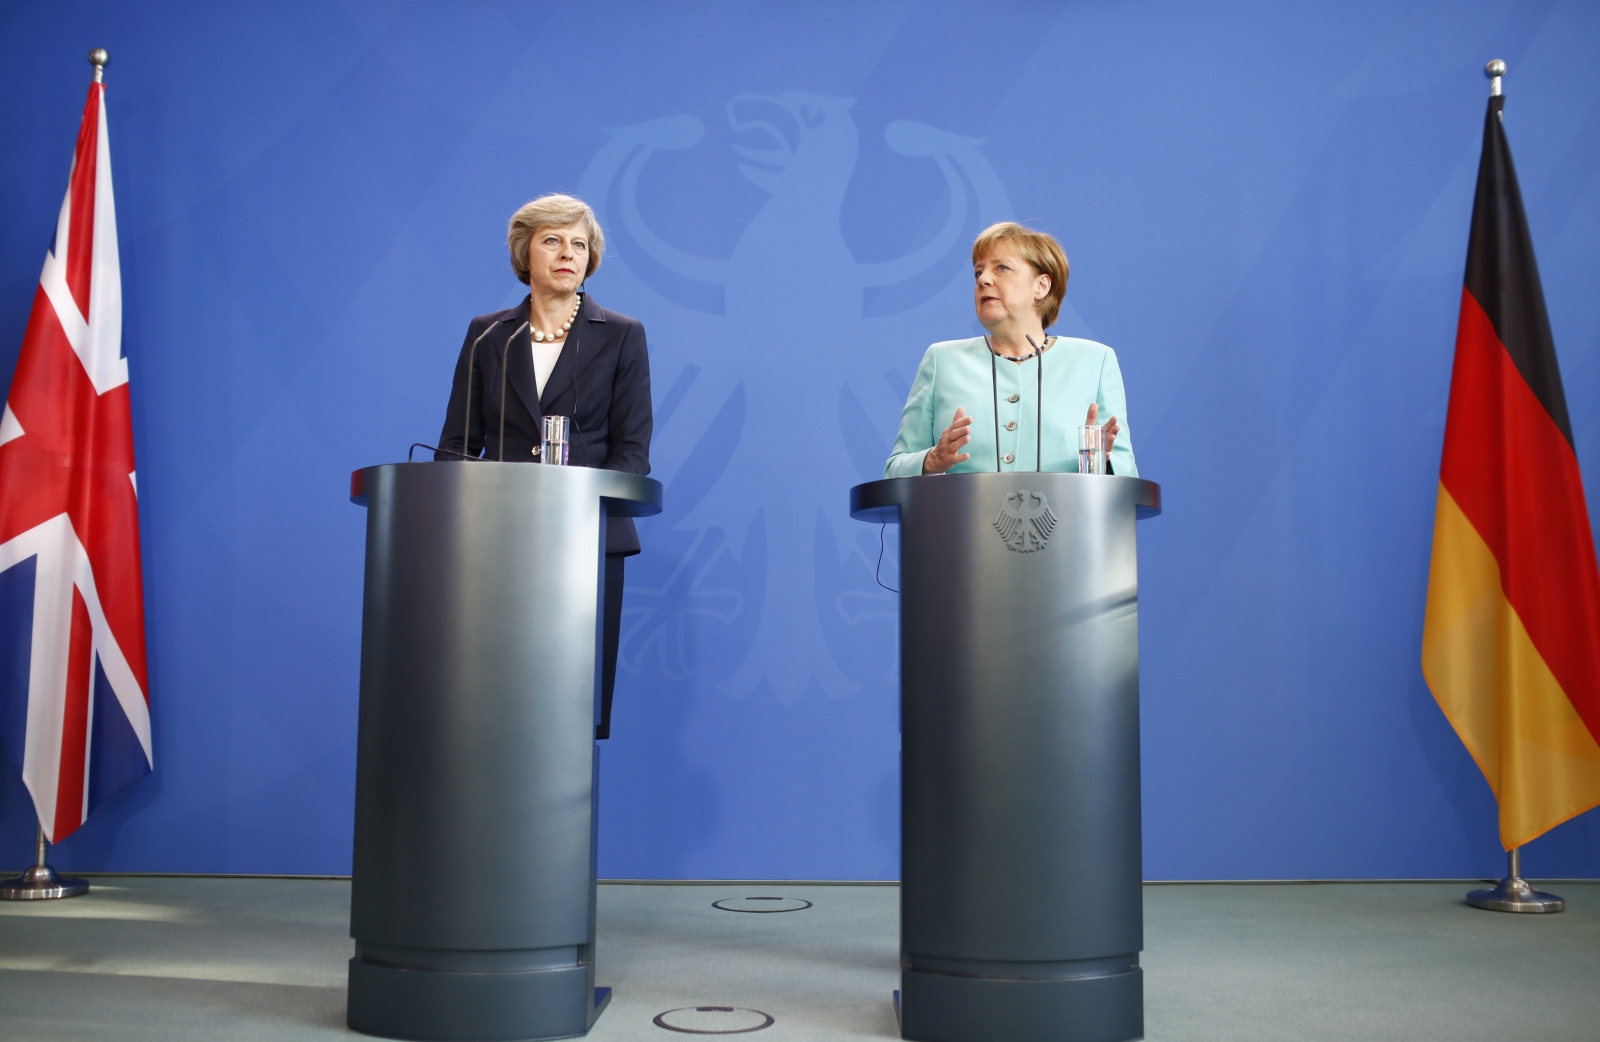 May and Merkel press conference